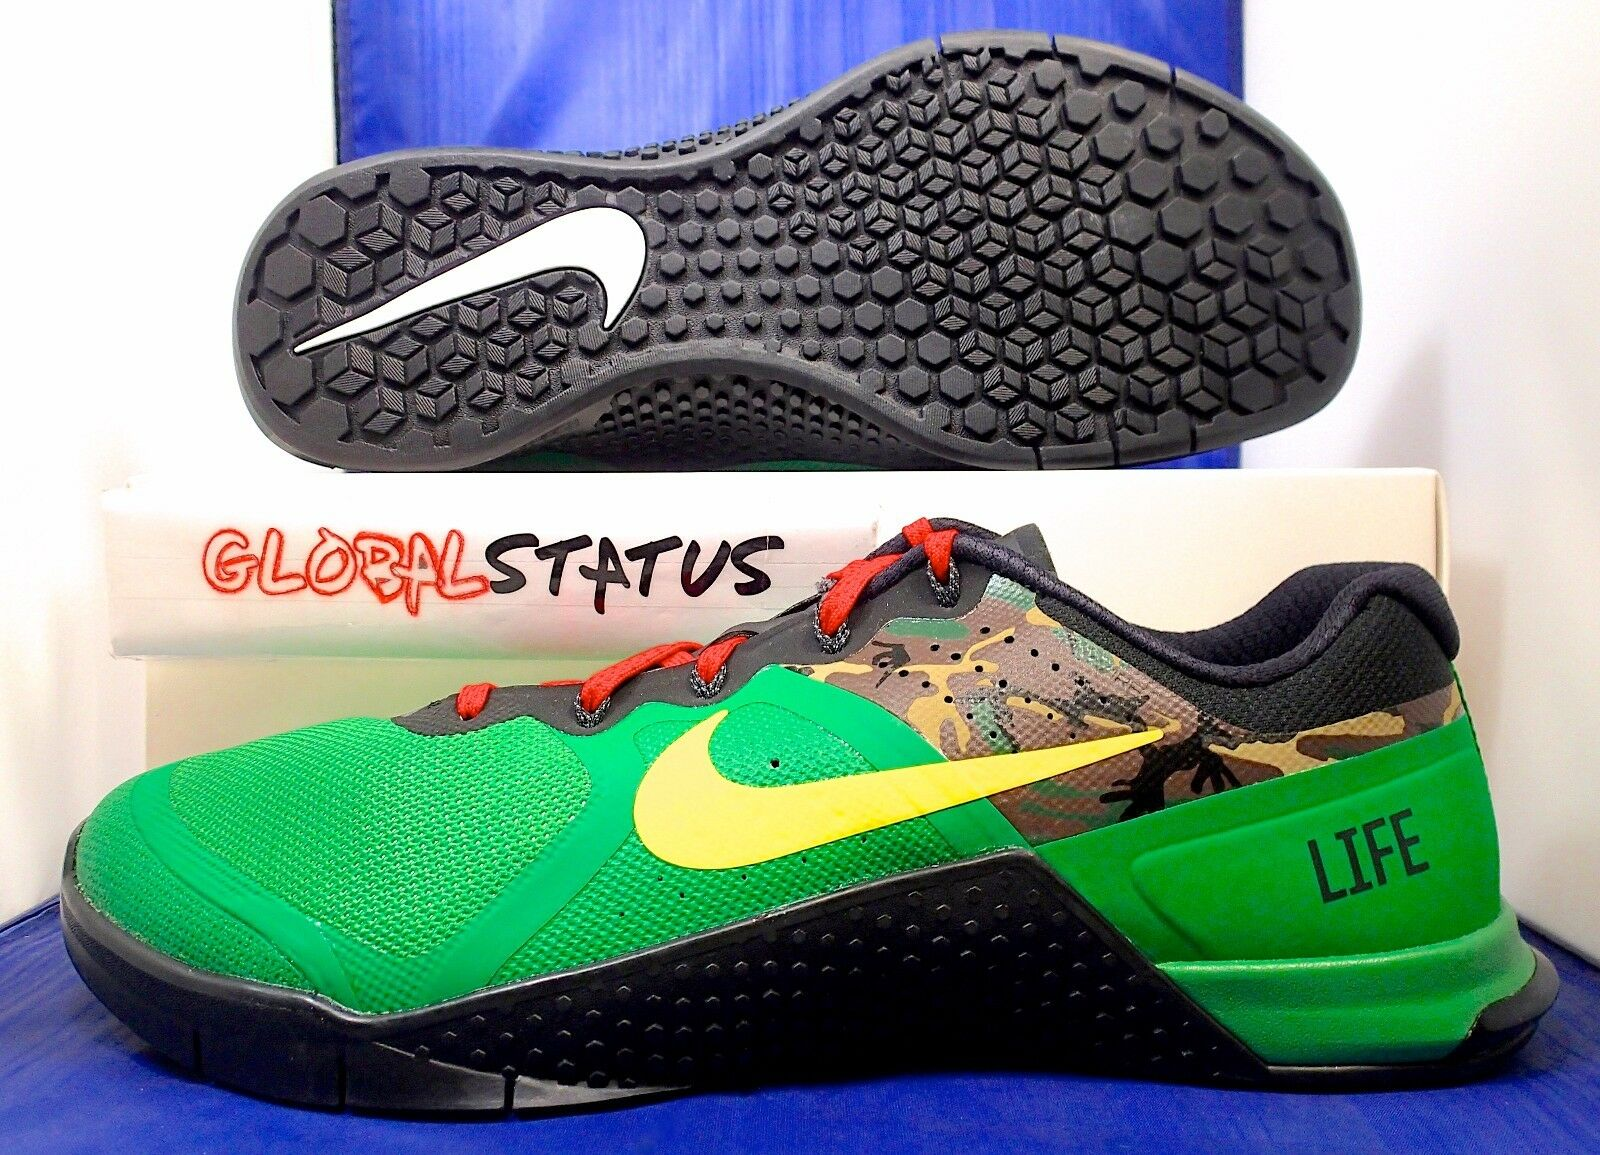 MENS NIKE ID METCON 2 GREEN YELLOW CAMO CROSS FIT SHOES 846027 991 SIZE 11 Great discount